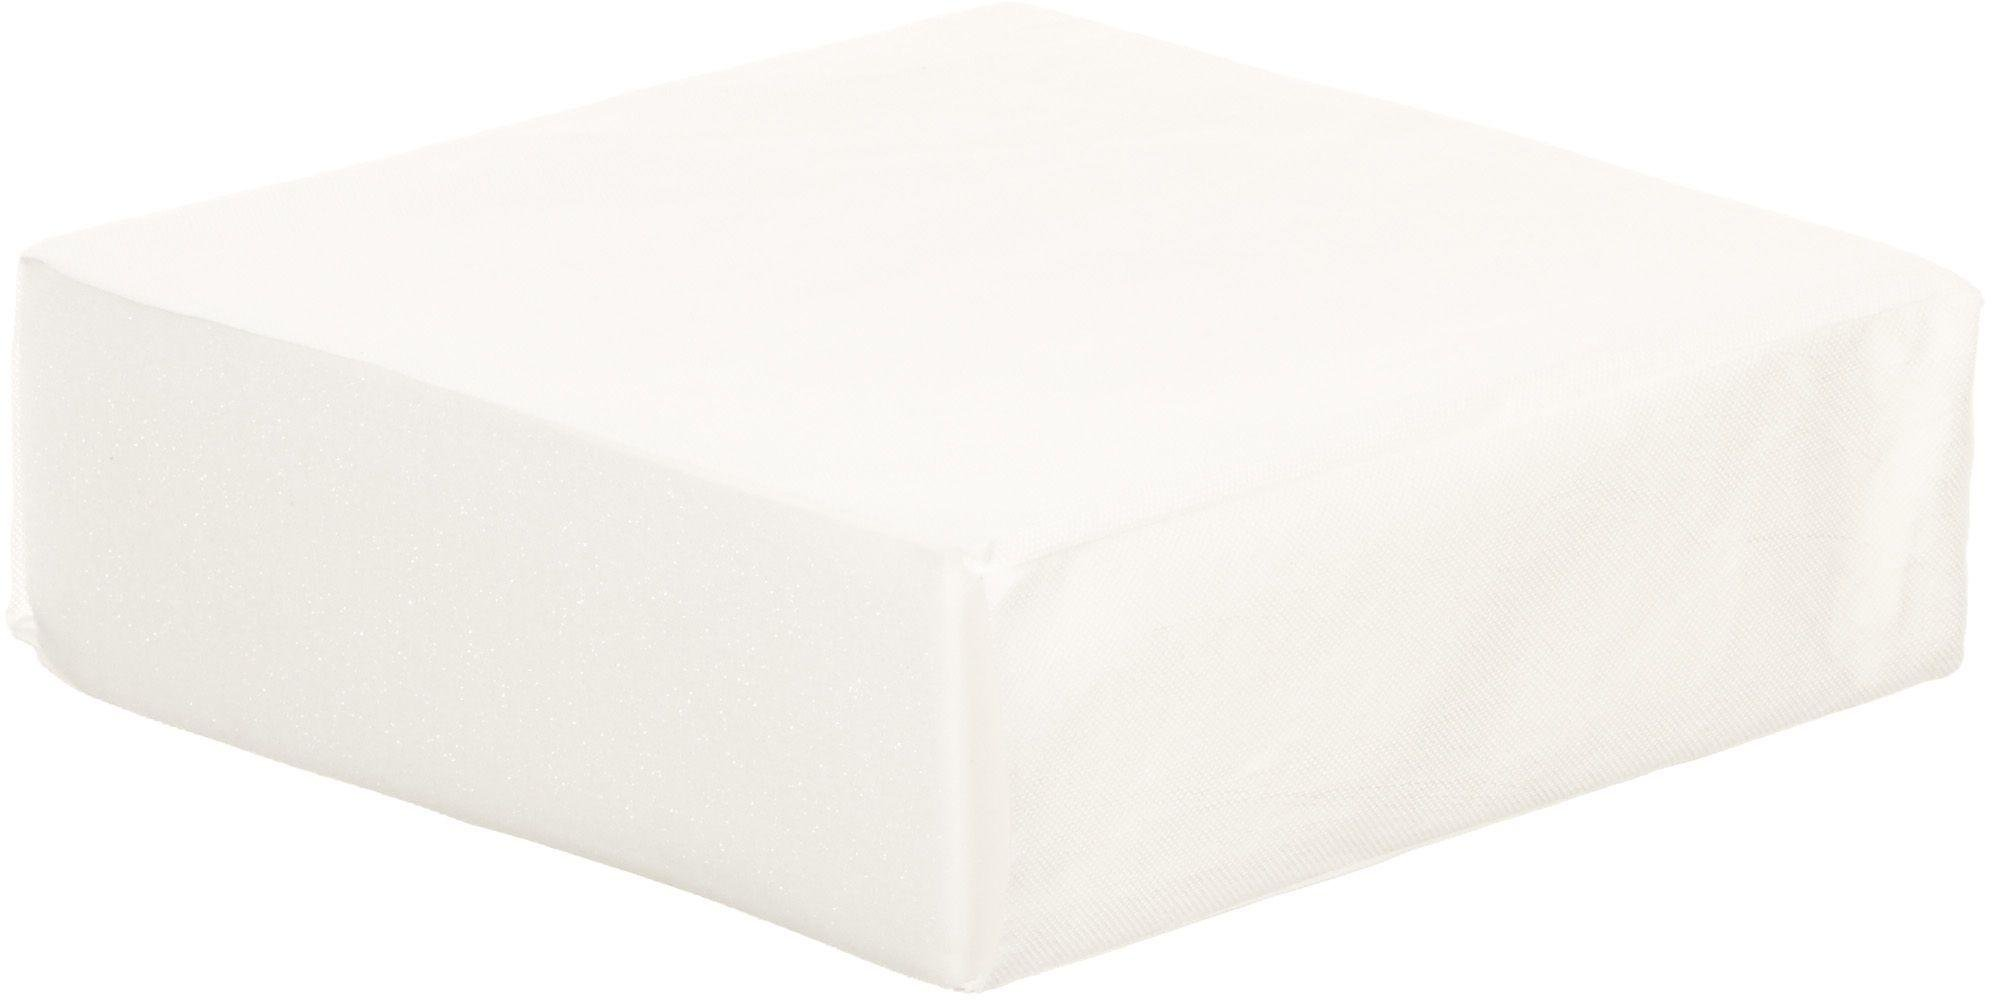 Obaby 140 x 70cm Foam Cot Bed Mattress.